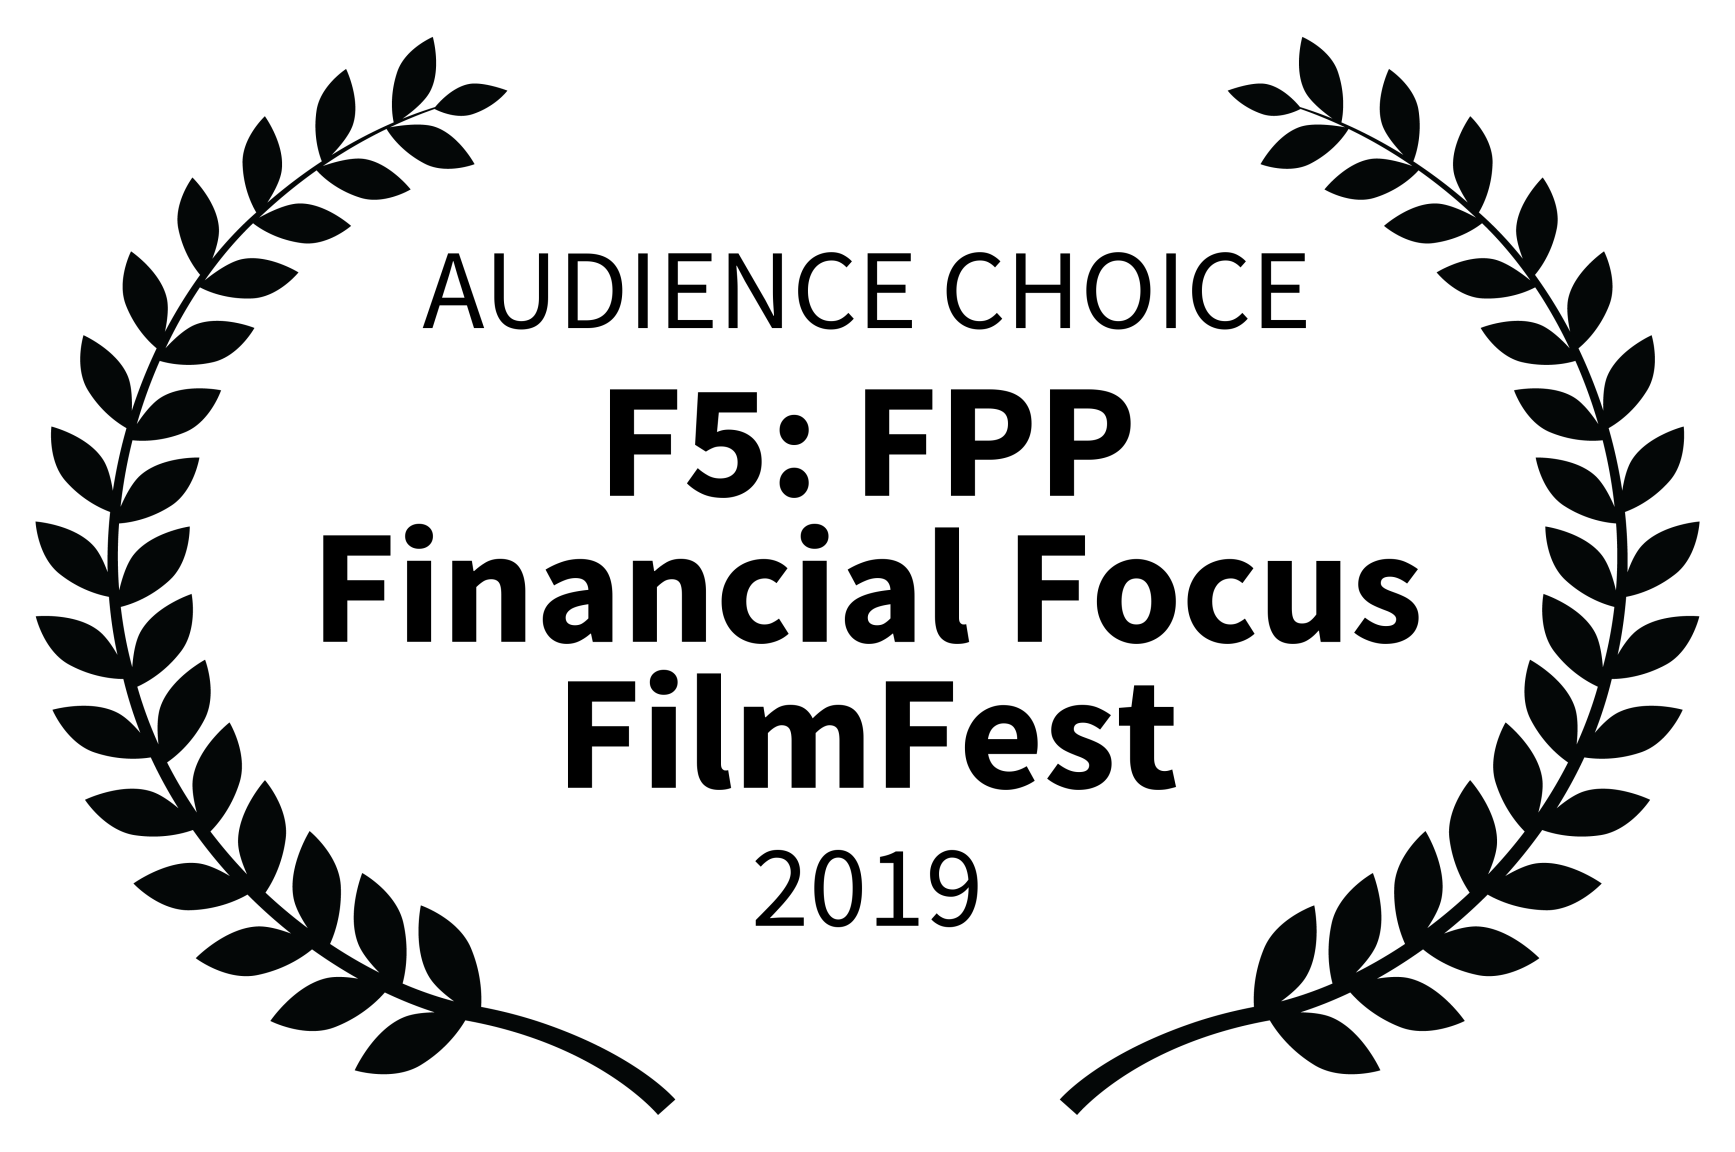 F5 FPP Financial Focus FilmFest AUDIENCE CHOICE - - 2019.png